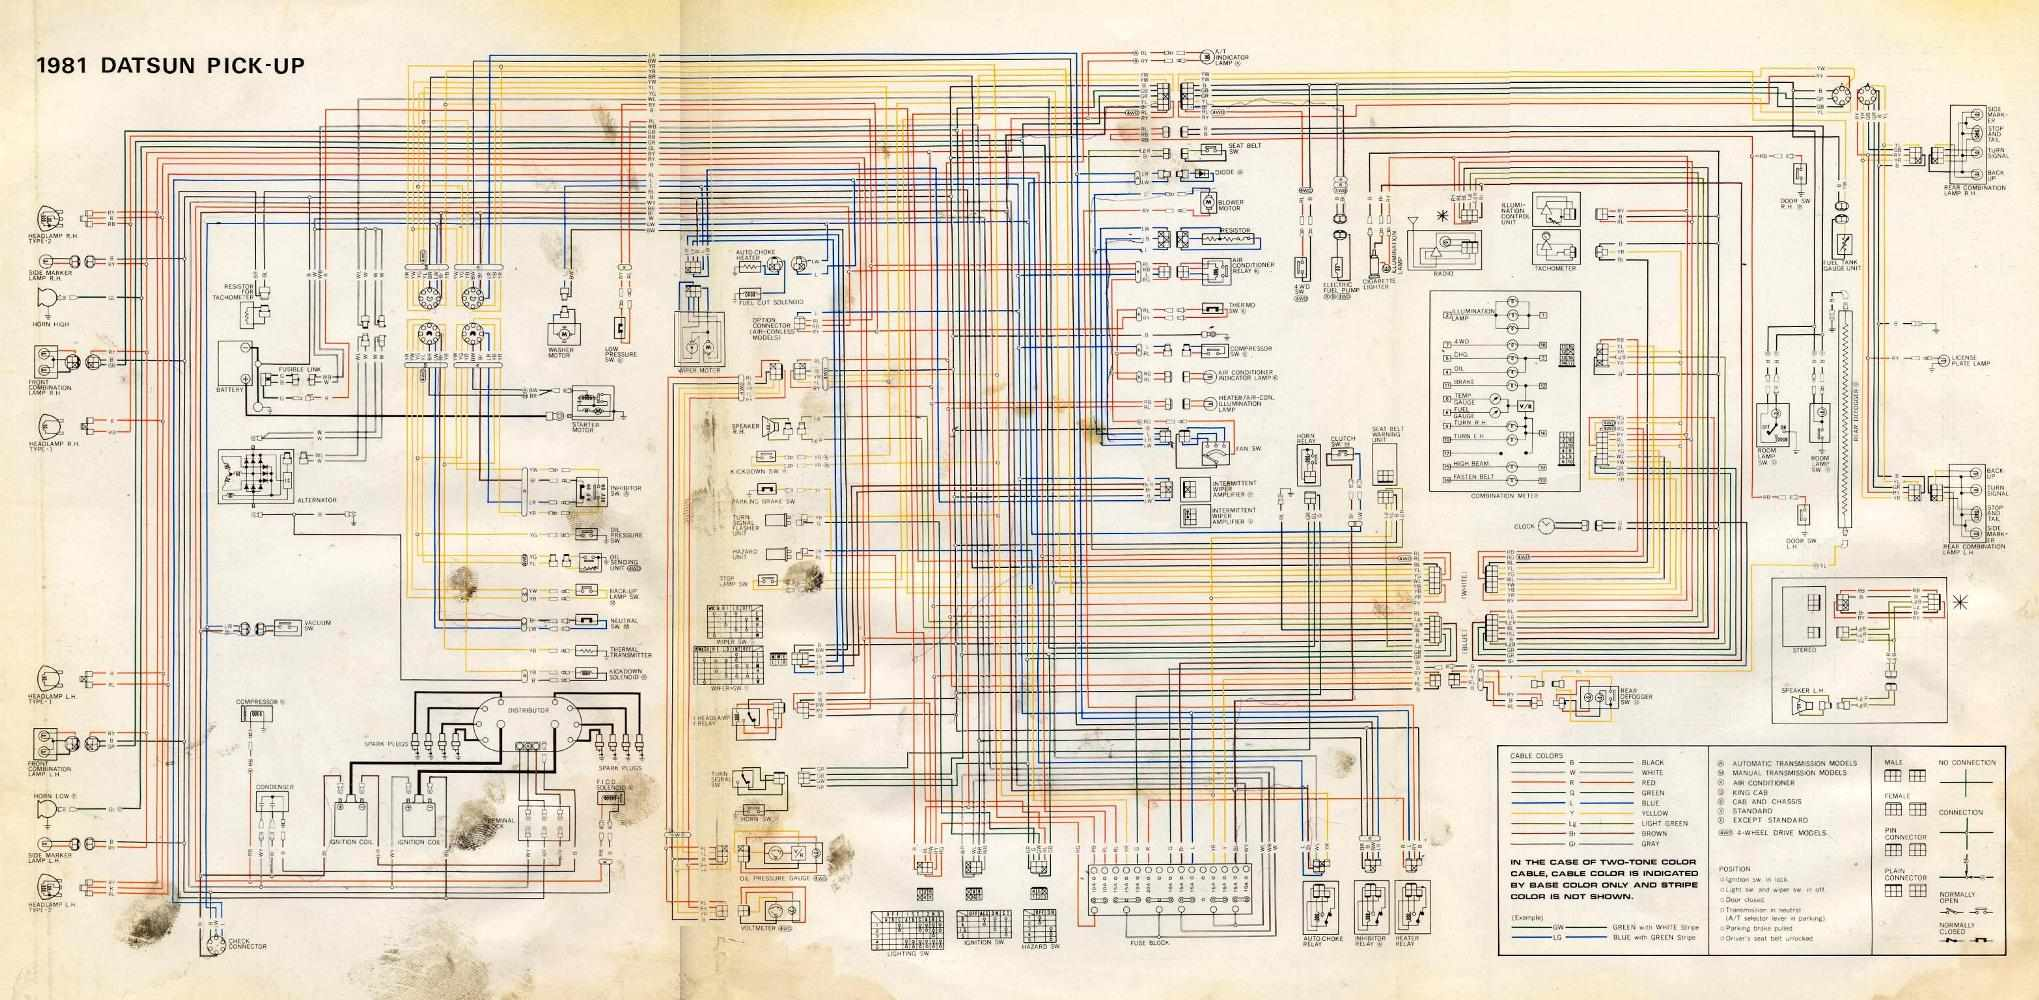 1977 dodge sportsman wiring diagram: nice 73 mustang wiring diagram  adornment - electrical diagram ideas